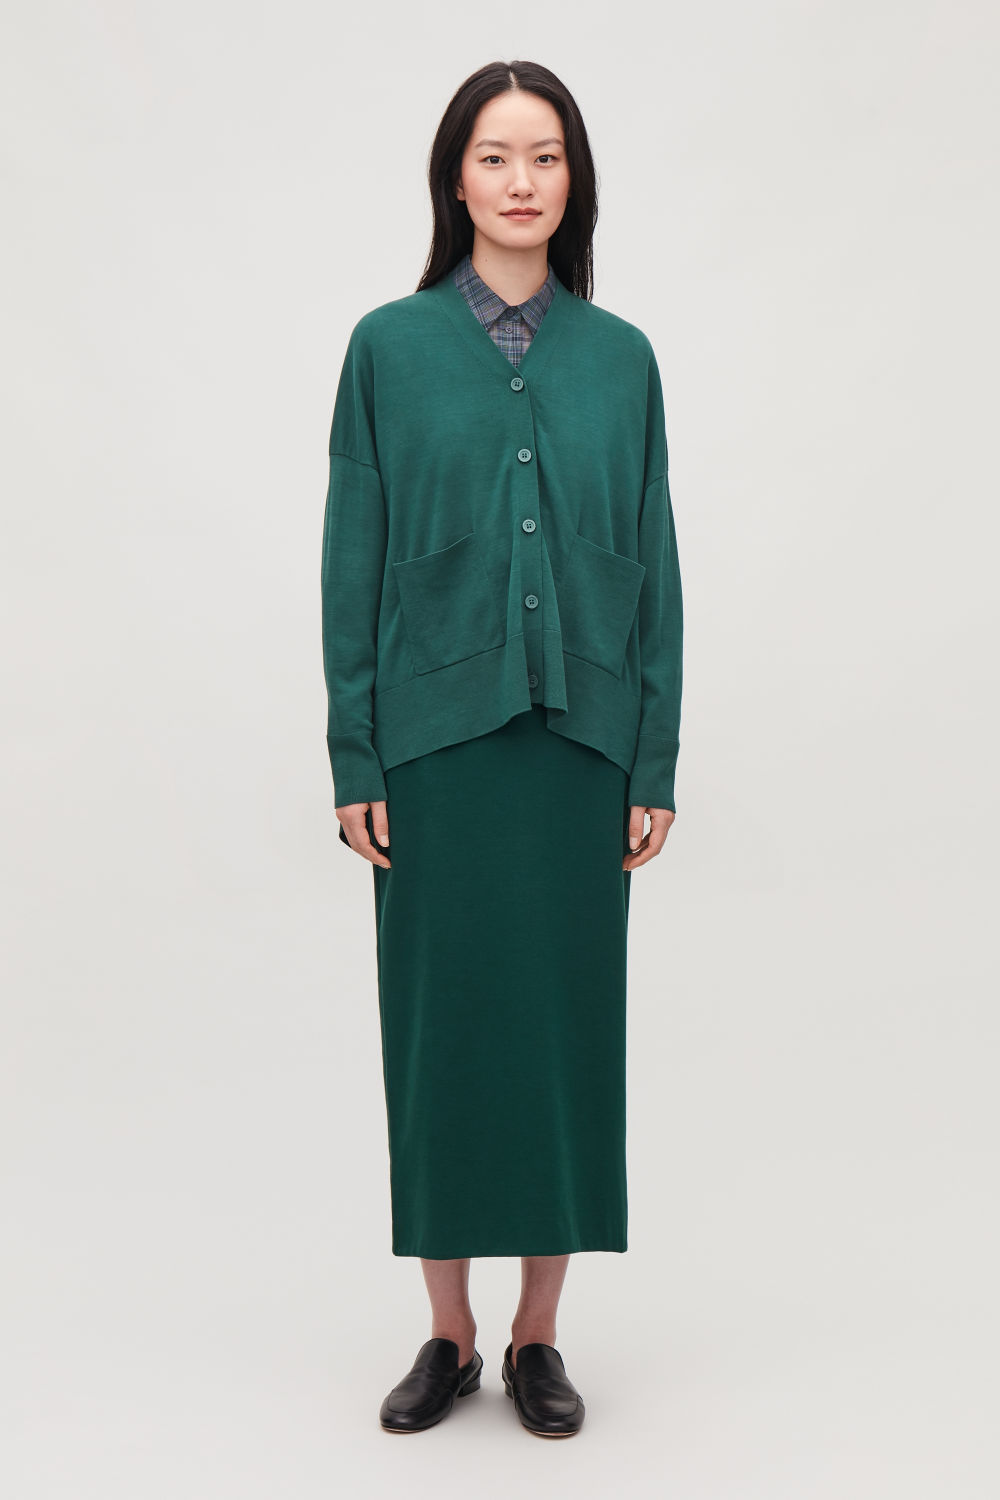 COS DRAPED-BACK CARDIGAN,Forest green